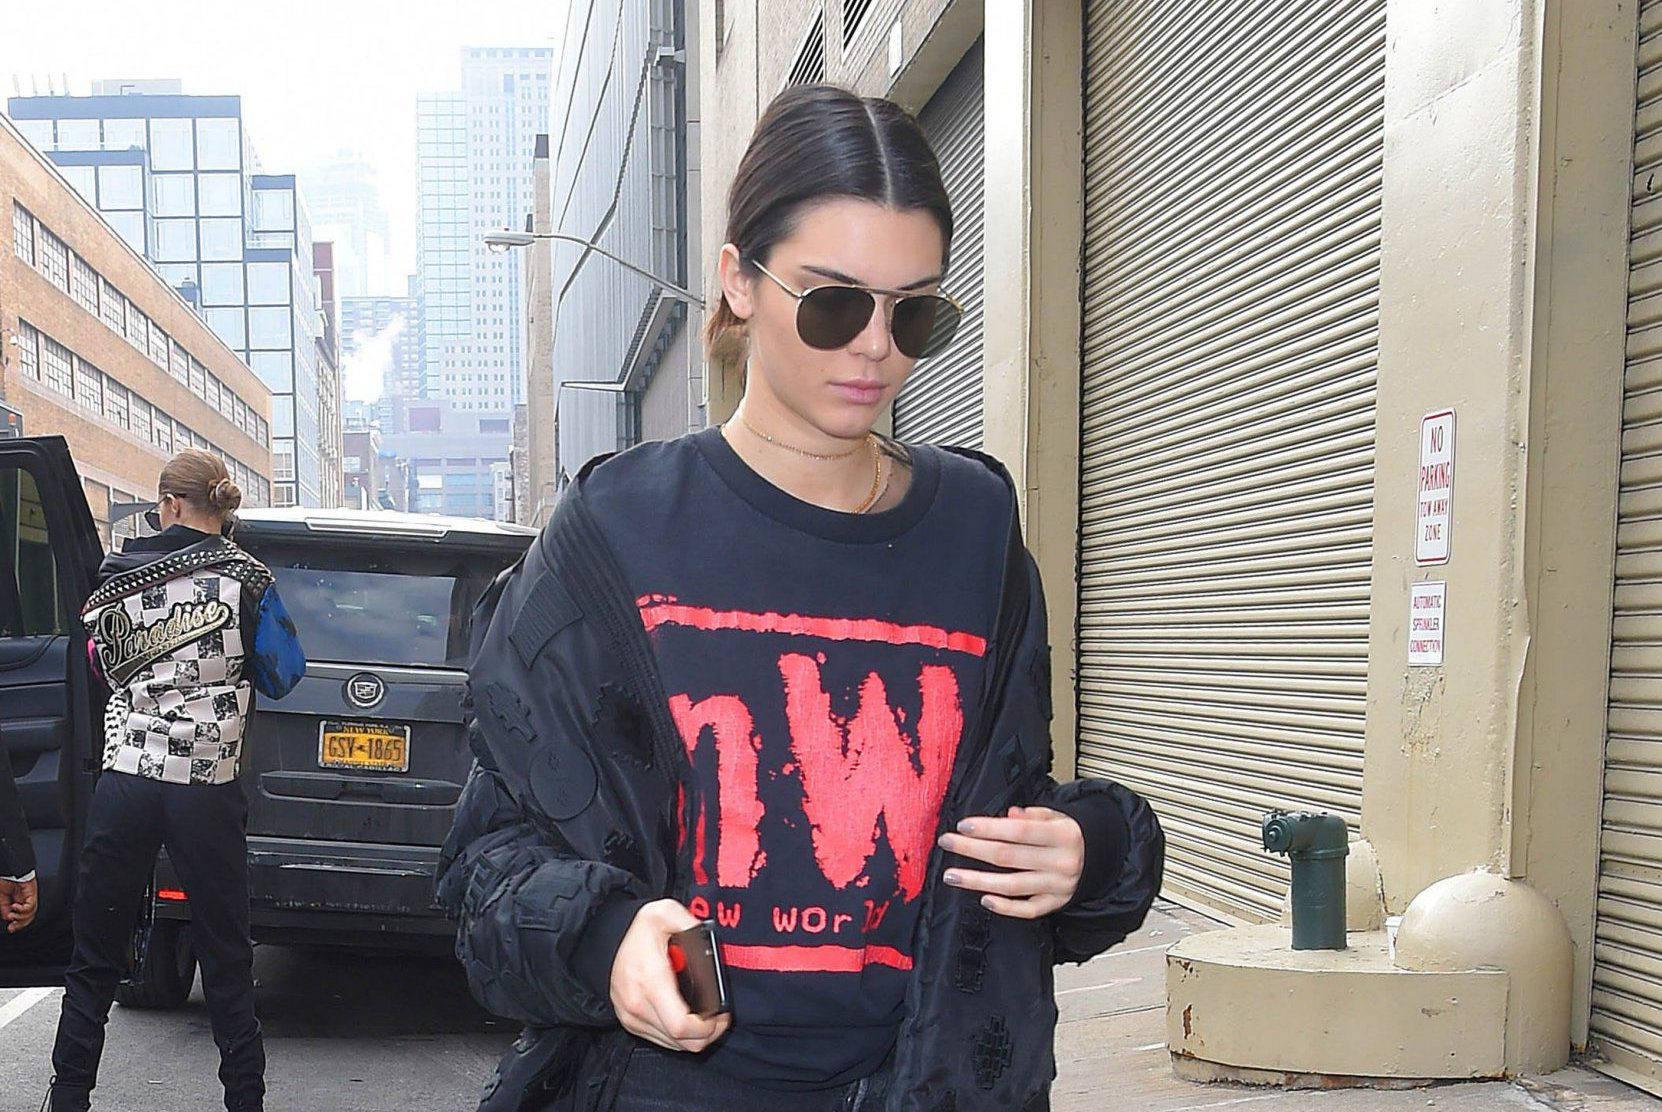 Kendall Jenner might have joined the New World Order and people don't know how to feel